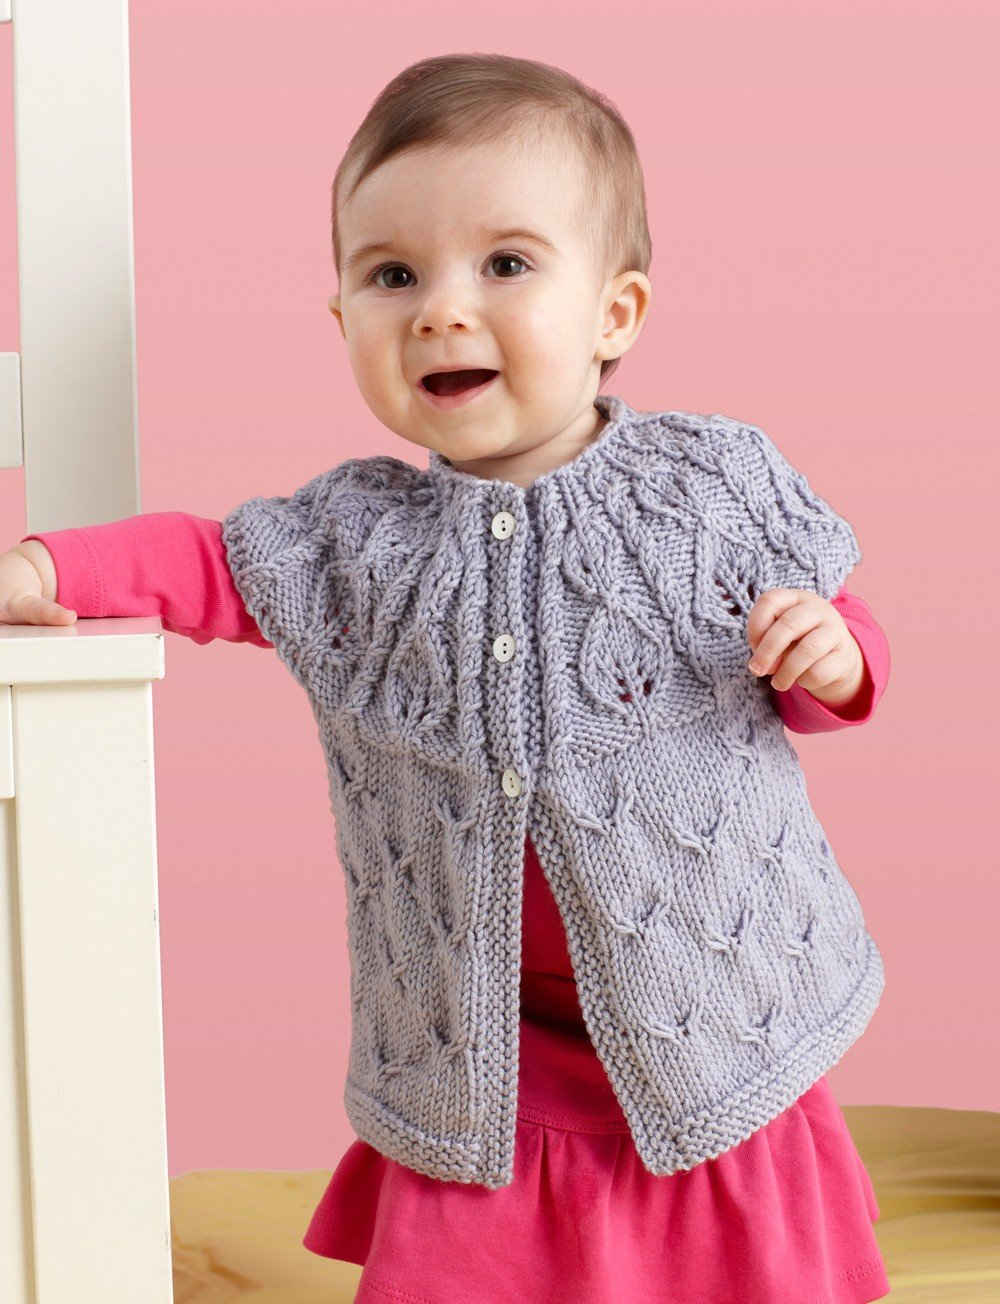 Sweater Knitting Patterns Free : 10+ Free Baby Sweater Knitting Patterns